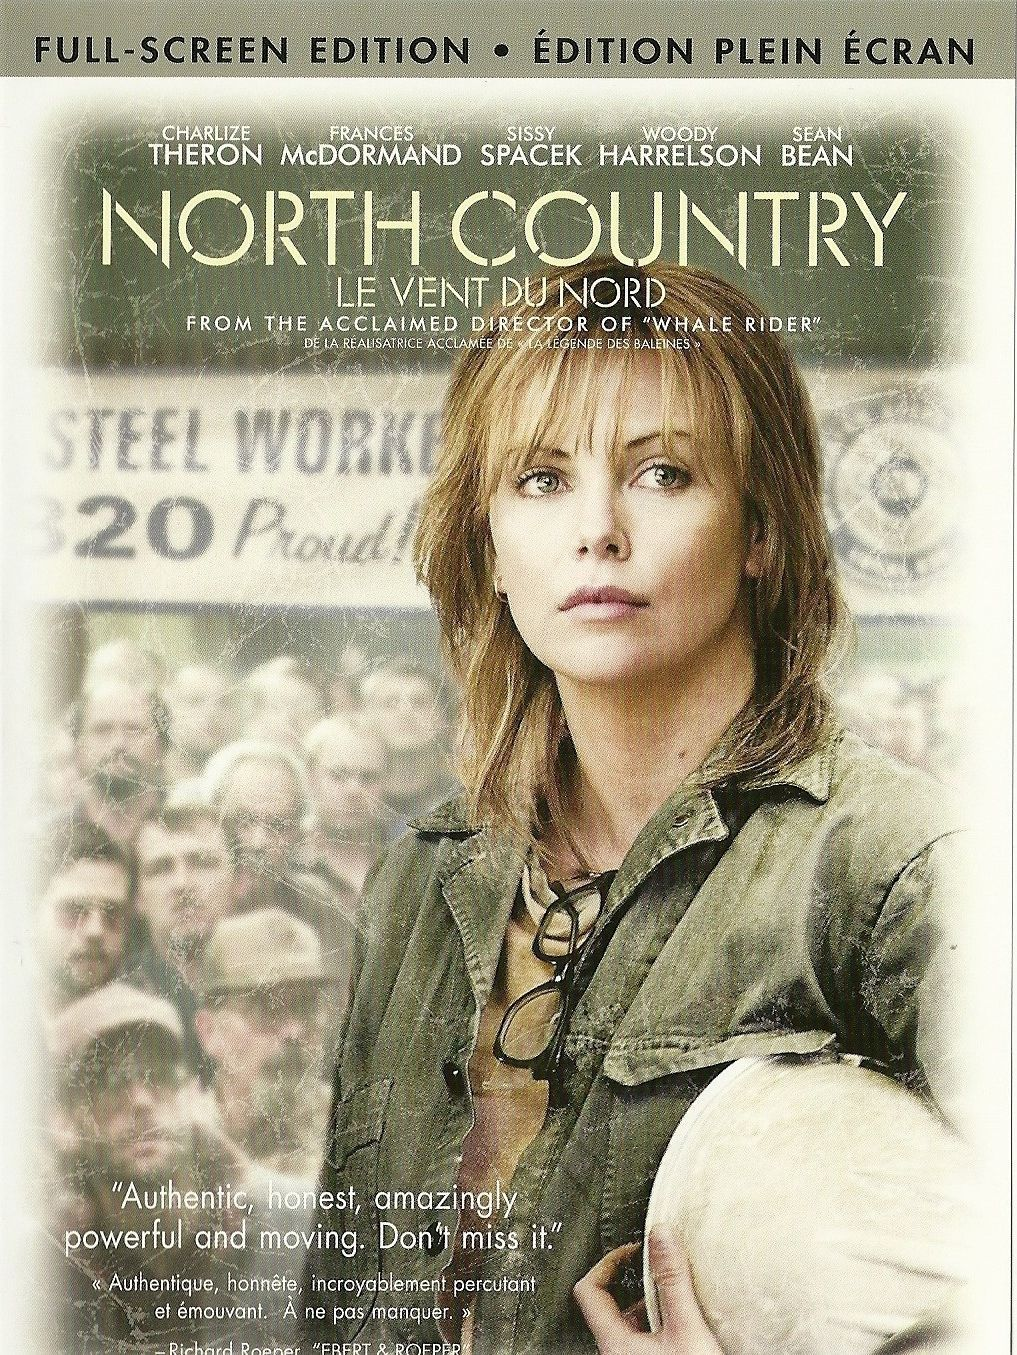 December 25 Happy birthday to Sissy Spacek - NORTH COUNTRY